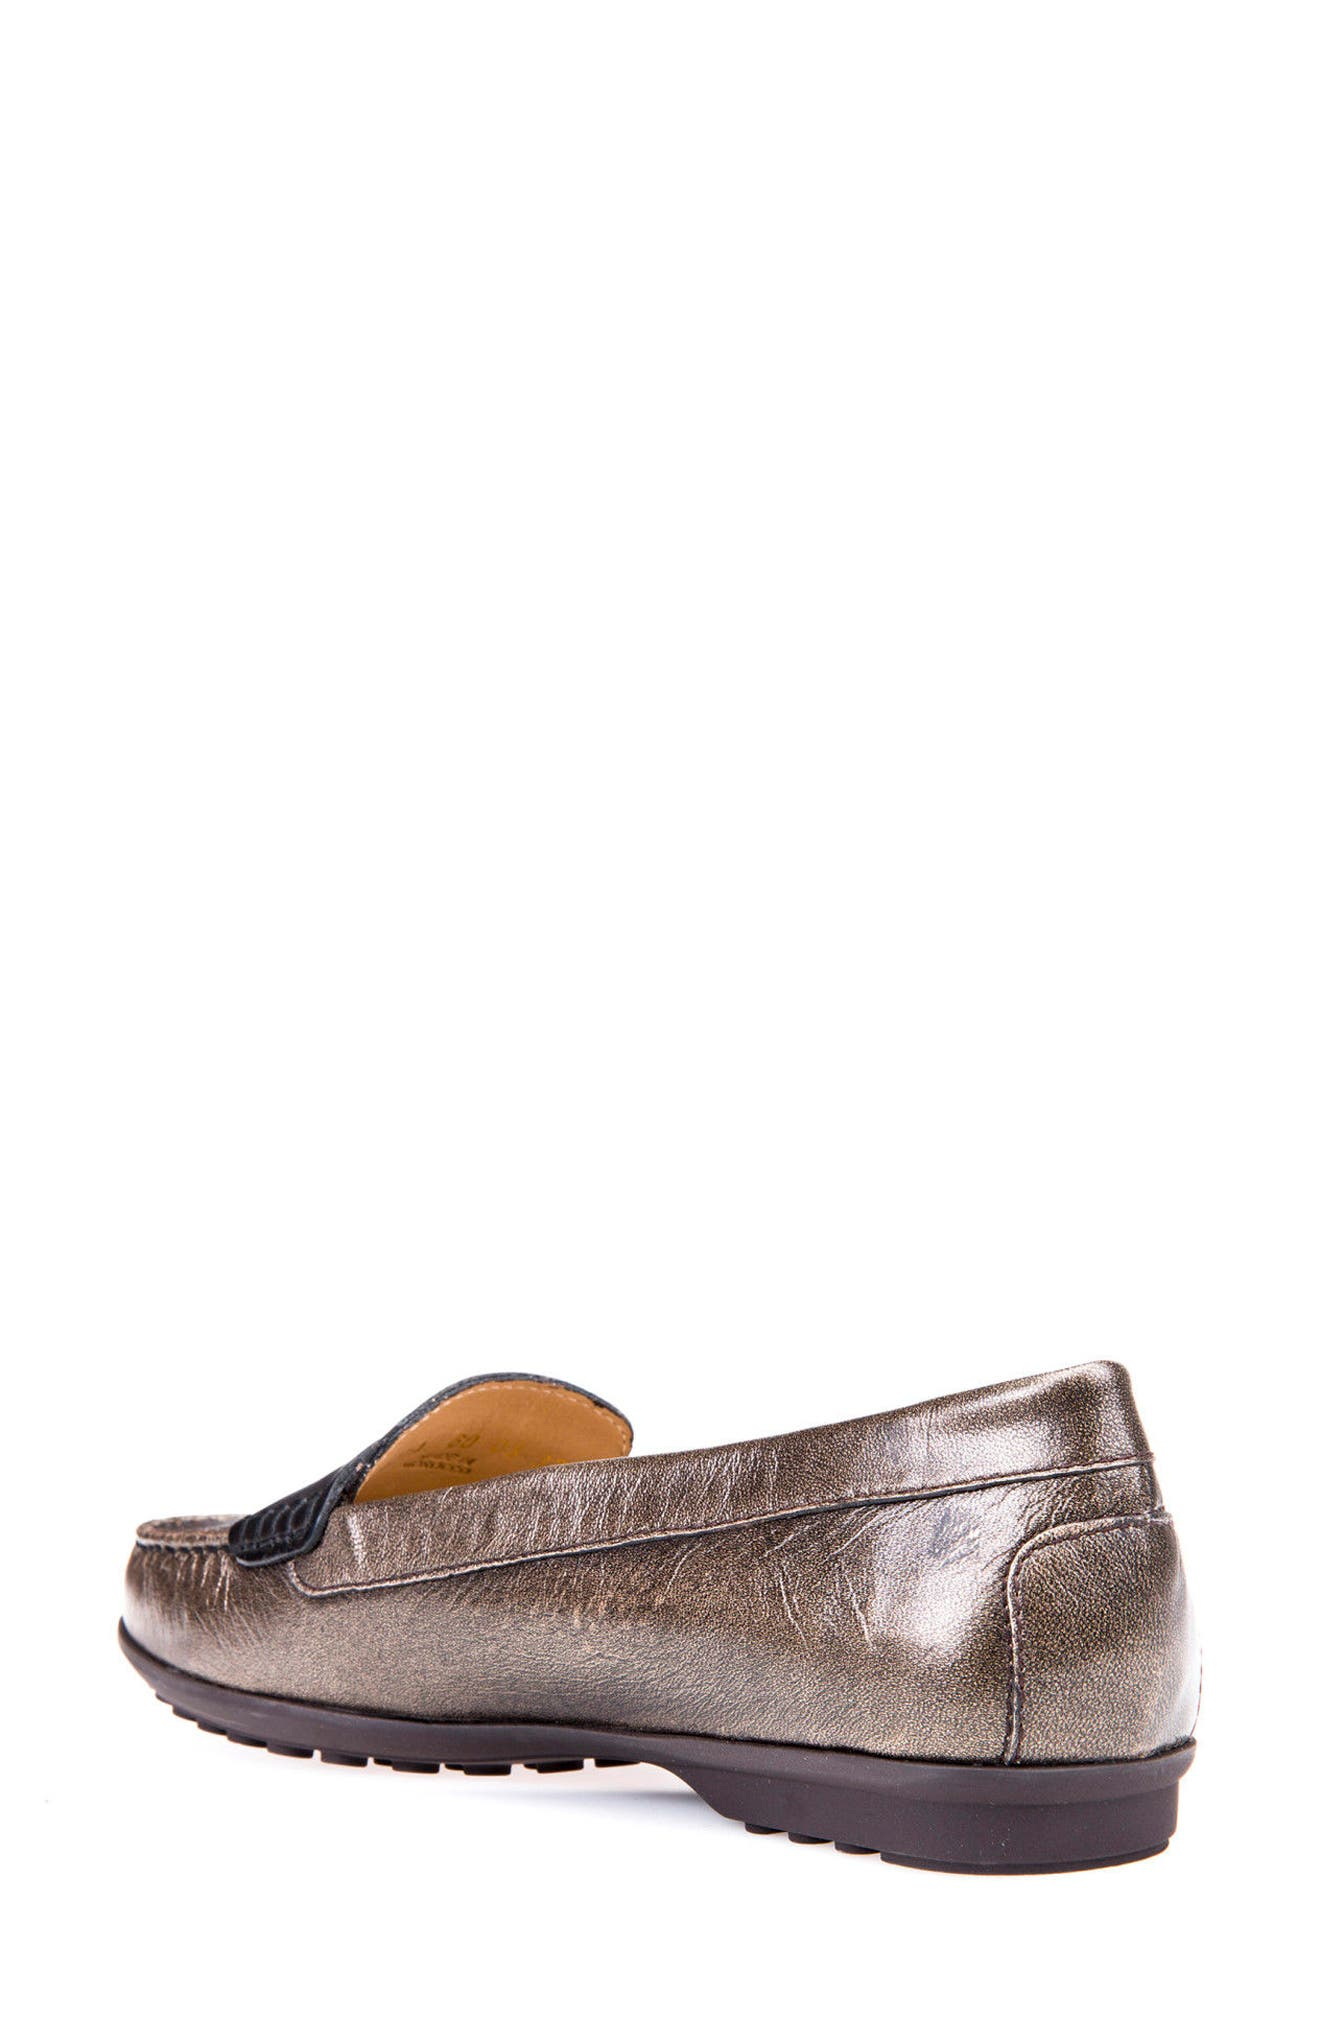 Alternate Image 2  - Geox Elidia 5 Penny Loafer (Women)